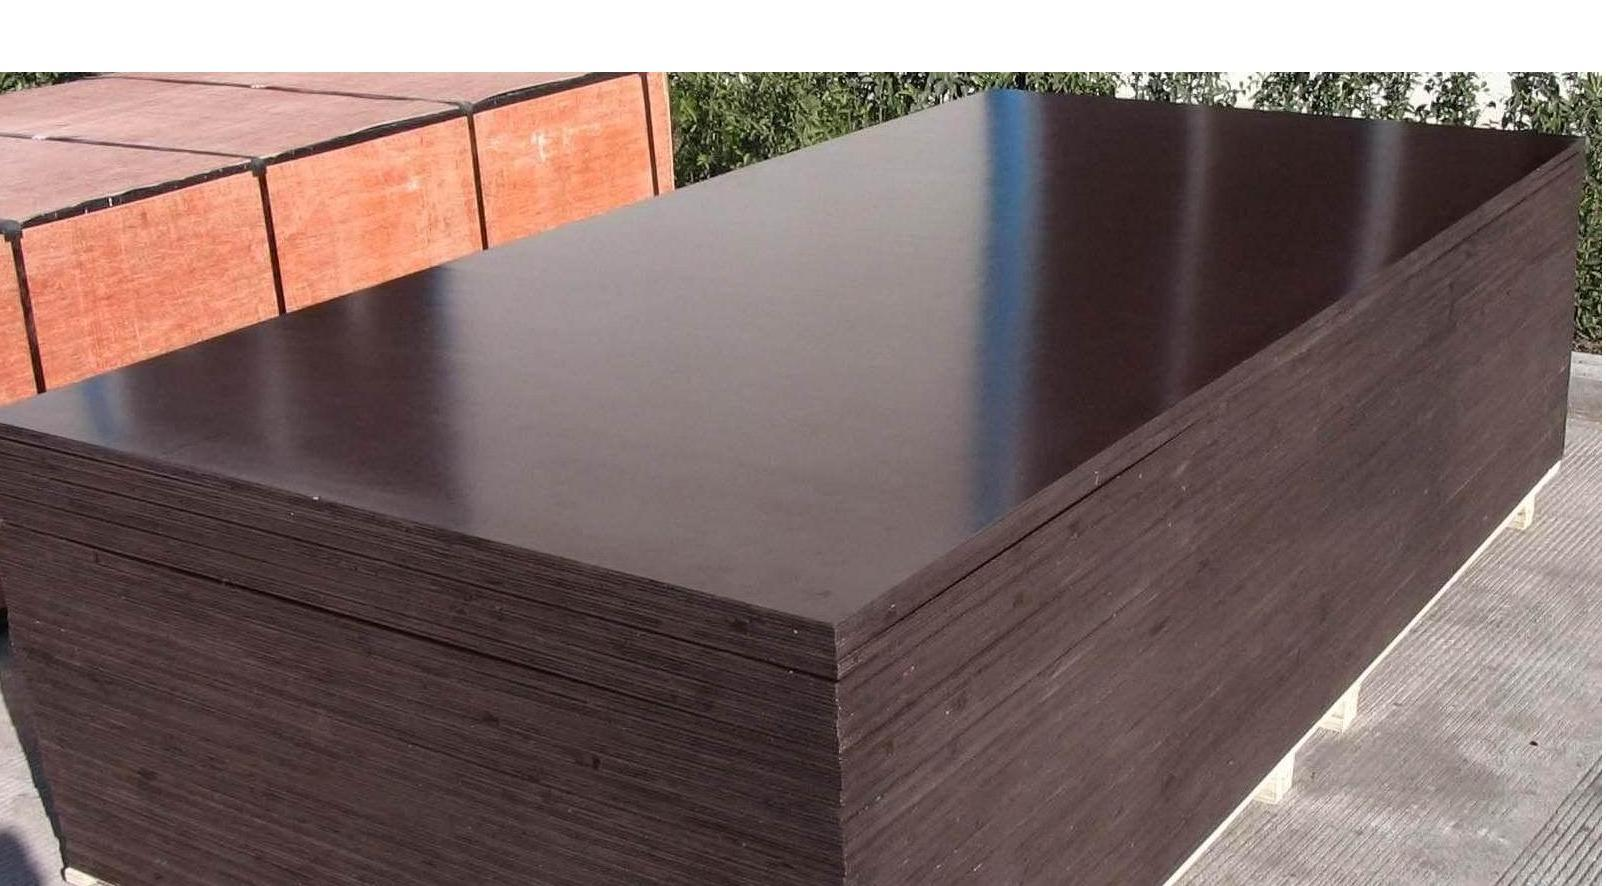 Roofing Plywood Images